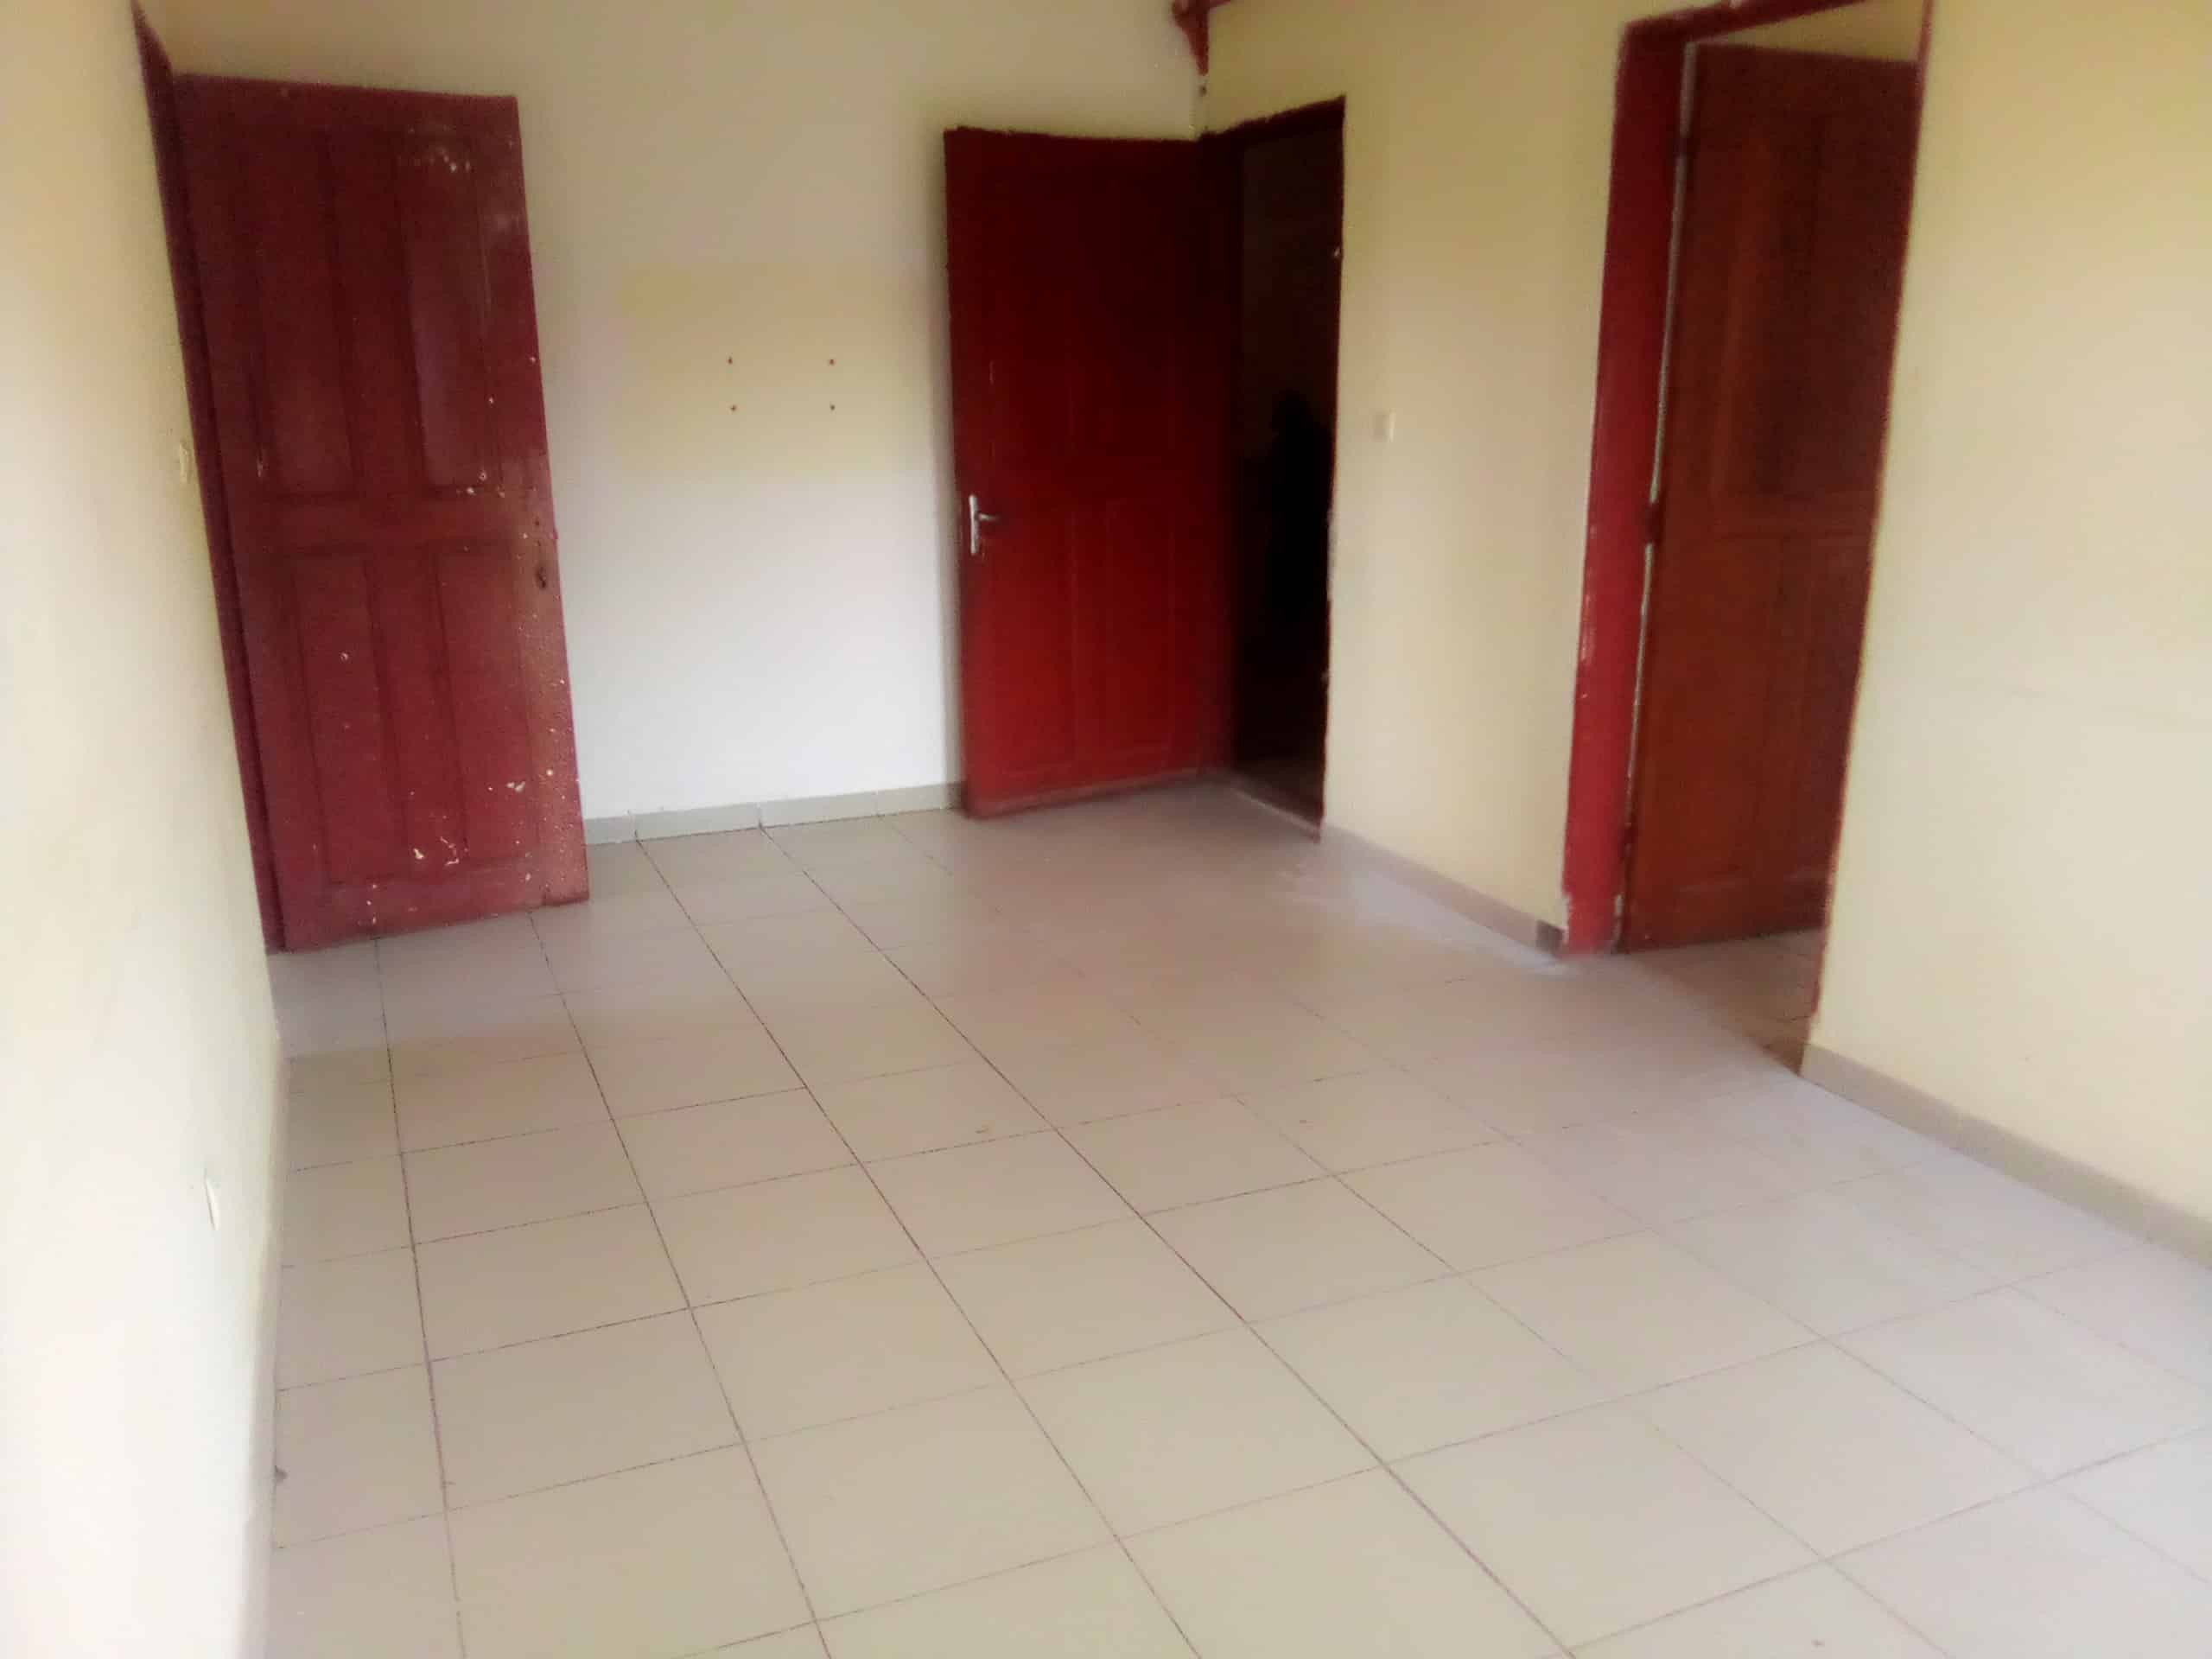 Apartment to rent - Douala, Makepe, PETIT PAYS - 1 living room(s), 2 bedroom(s), 1 bathroom(s) - 80 000 FCFA / month